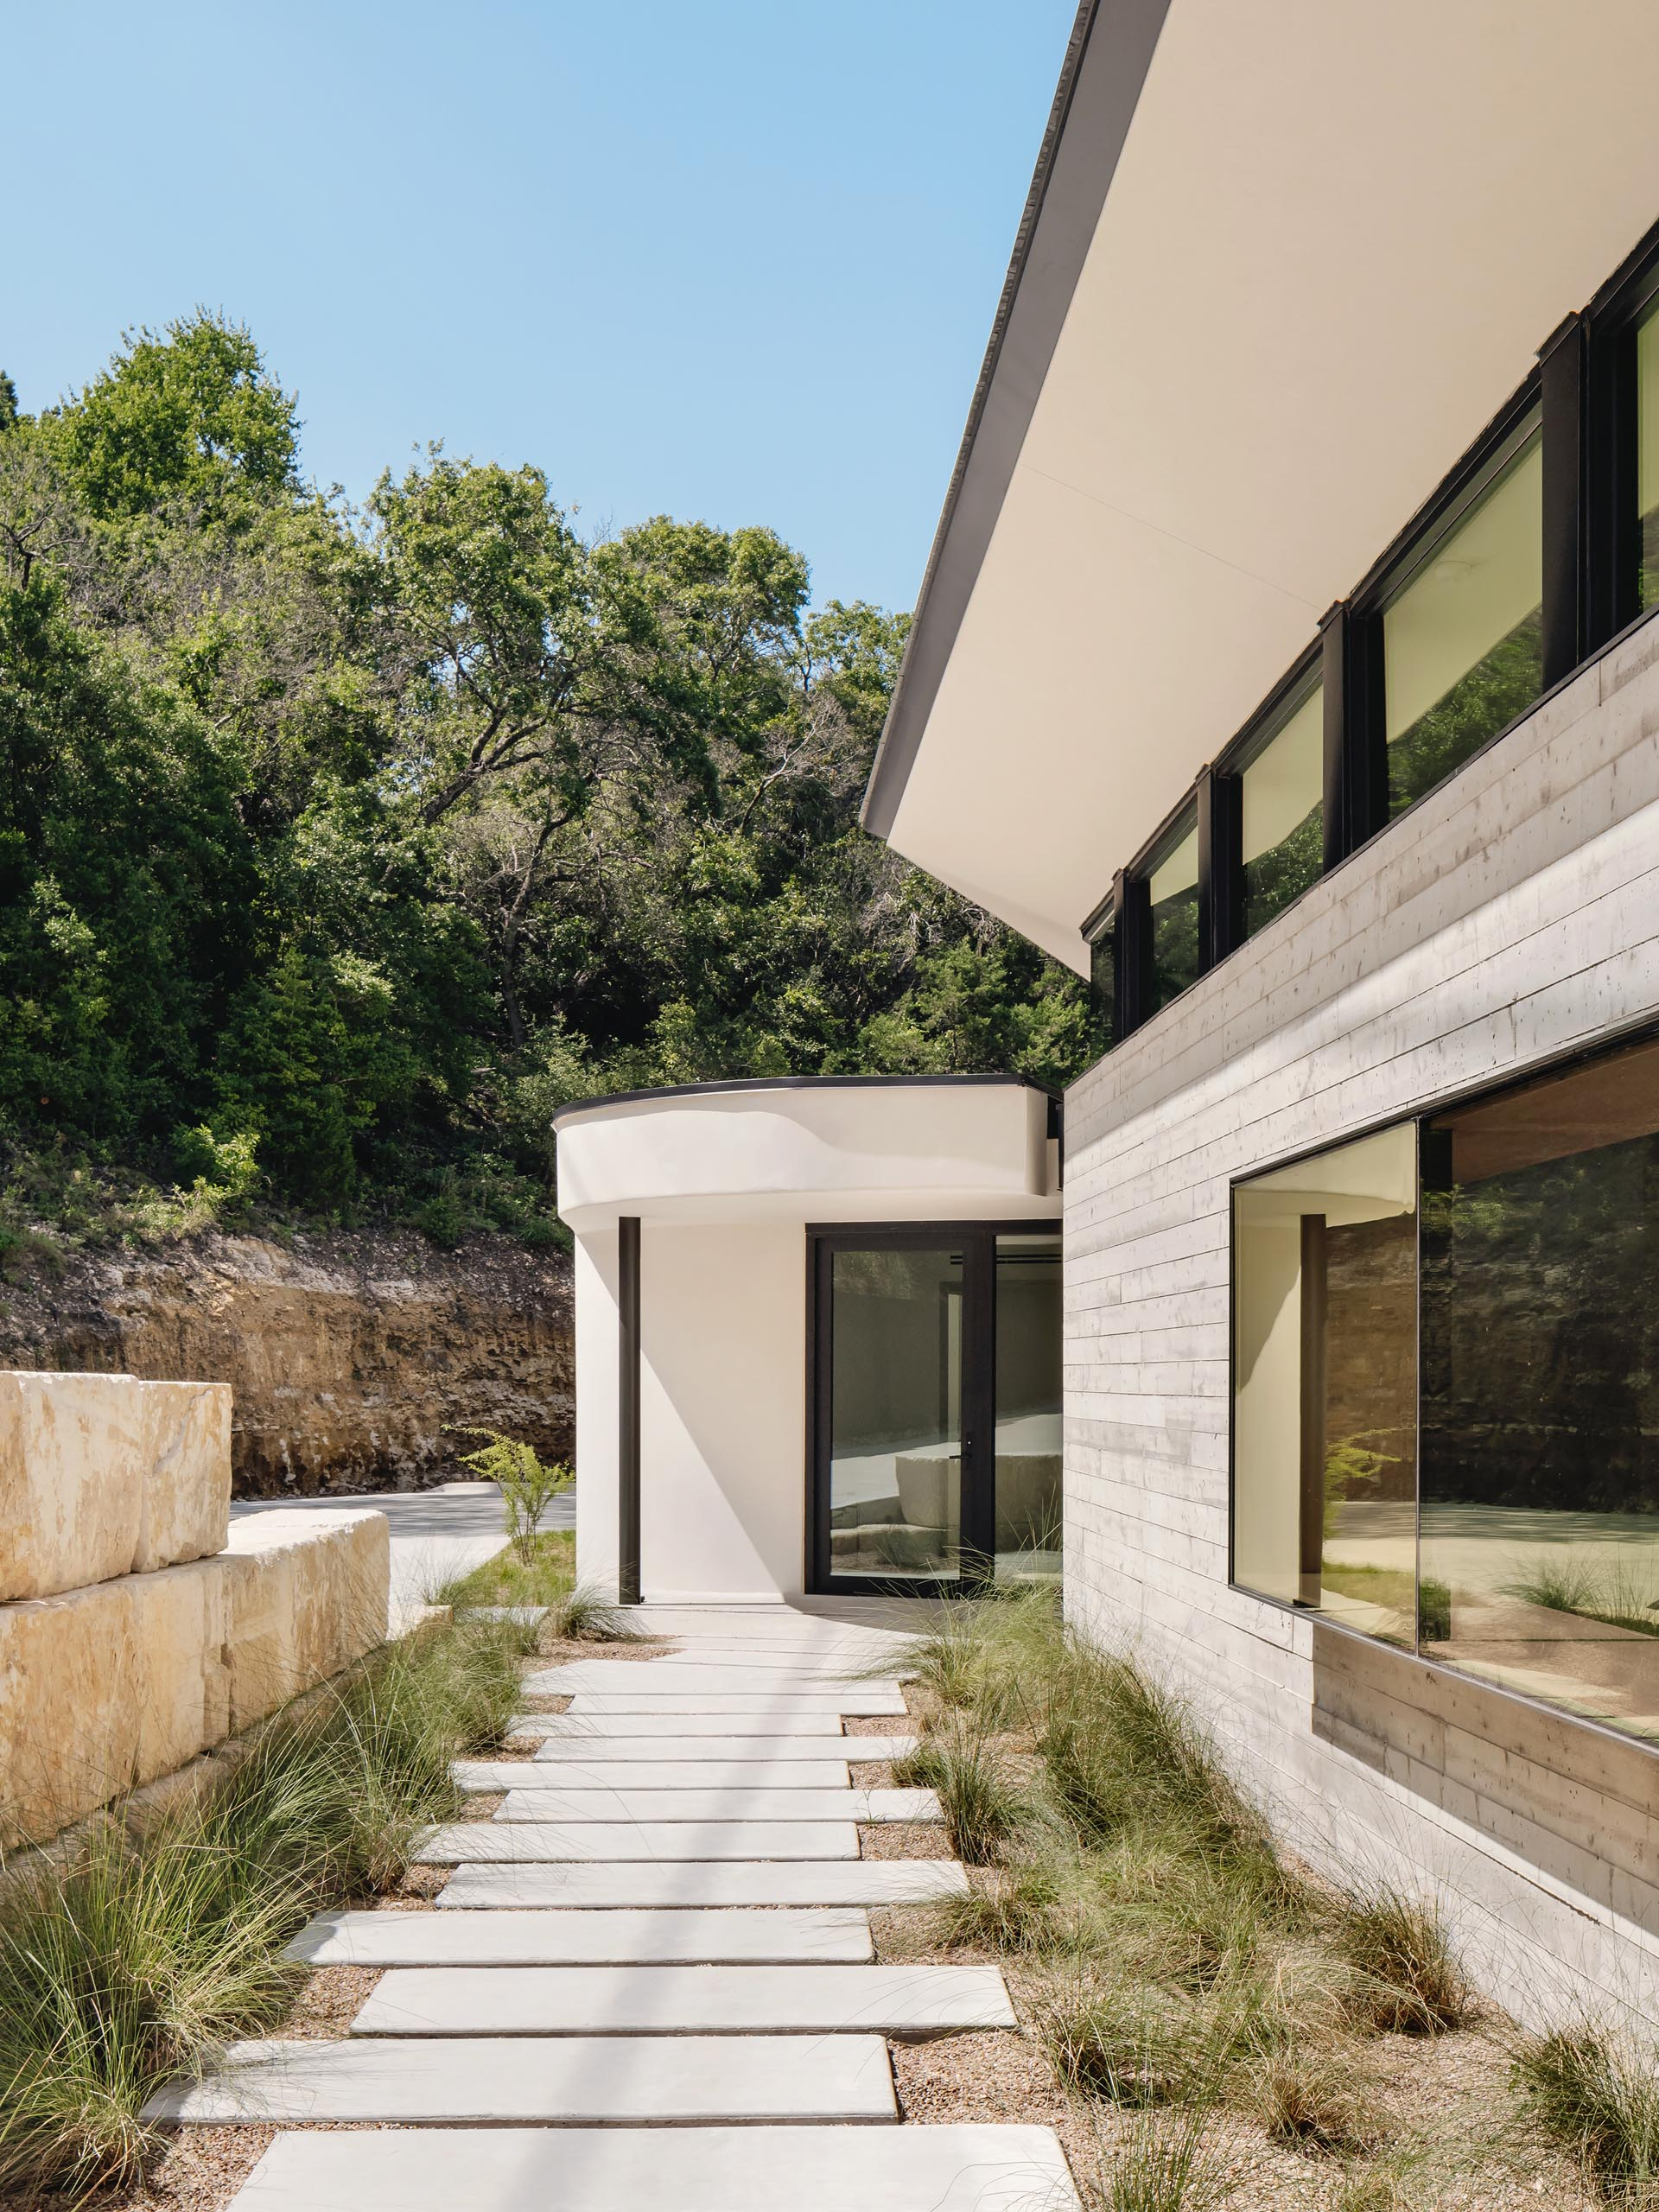 A path lined with grasses runs alongside this modern house and its board formed concrete wall, and guides people to the entryway with a wood accent wall.